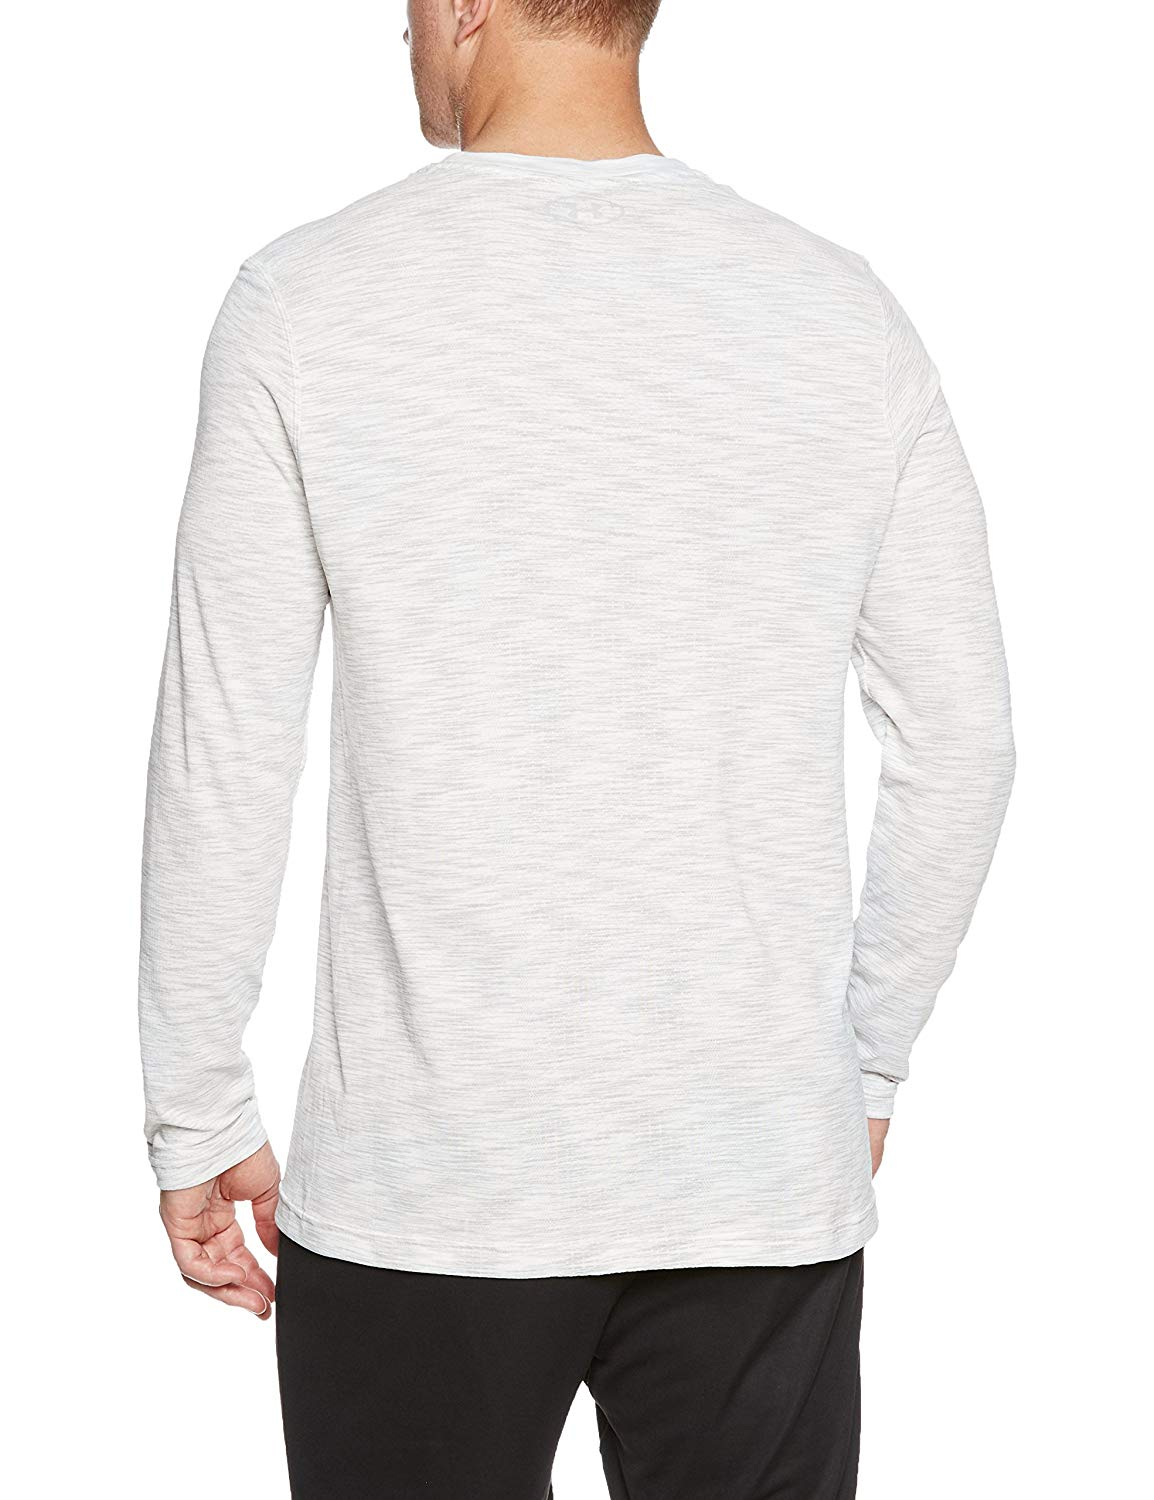 Under Armour Threadborne Seamless LS Training Top - SS17